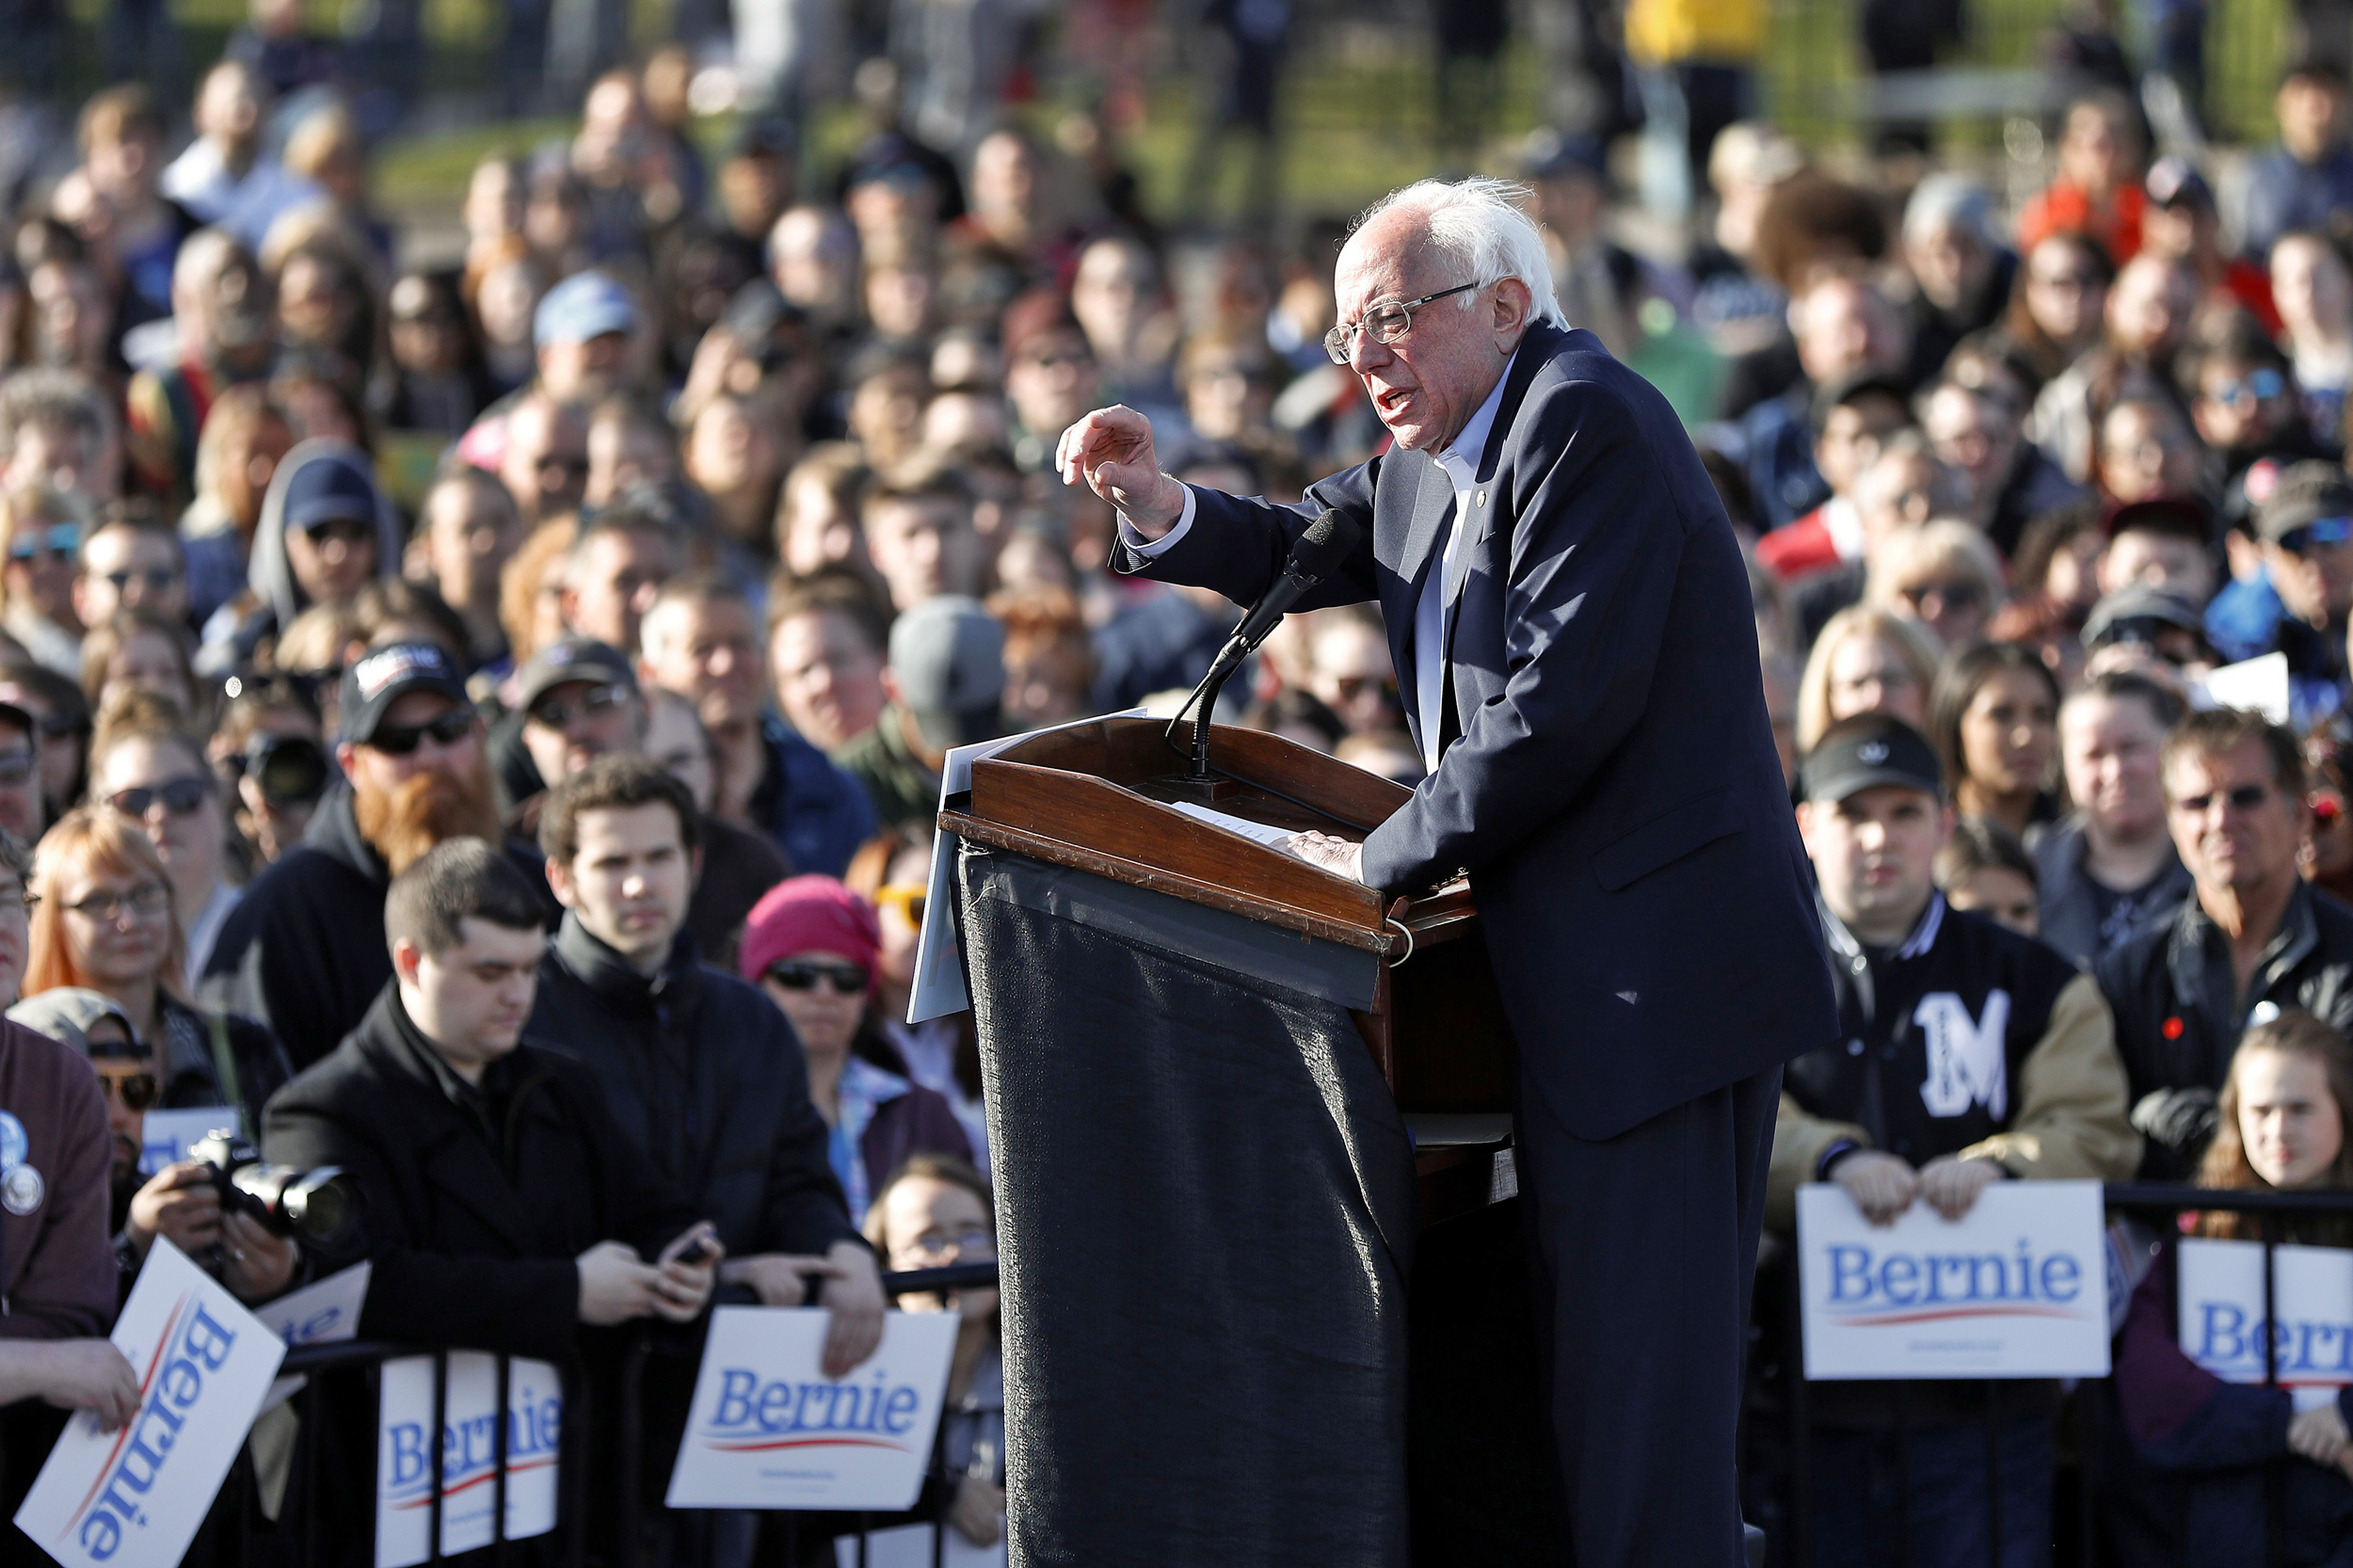 Bernie Sanders speaking behind a podium at a rally